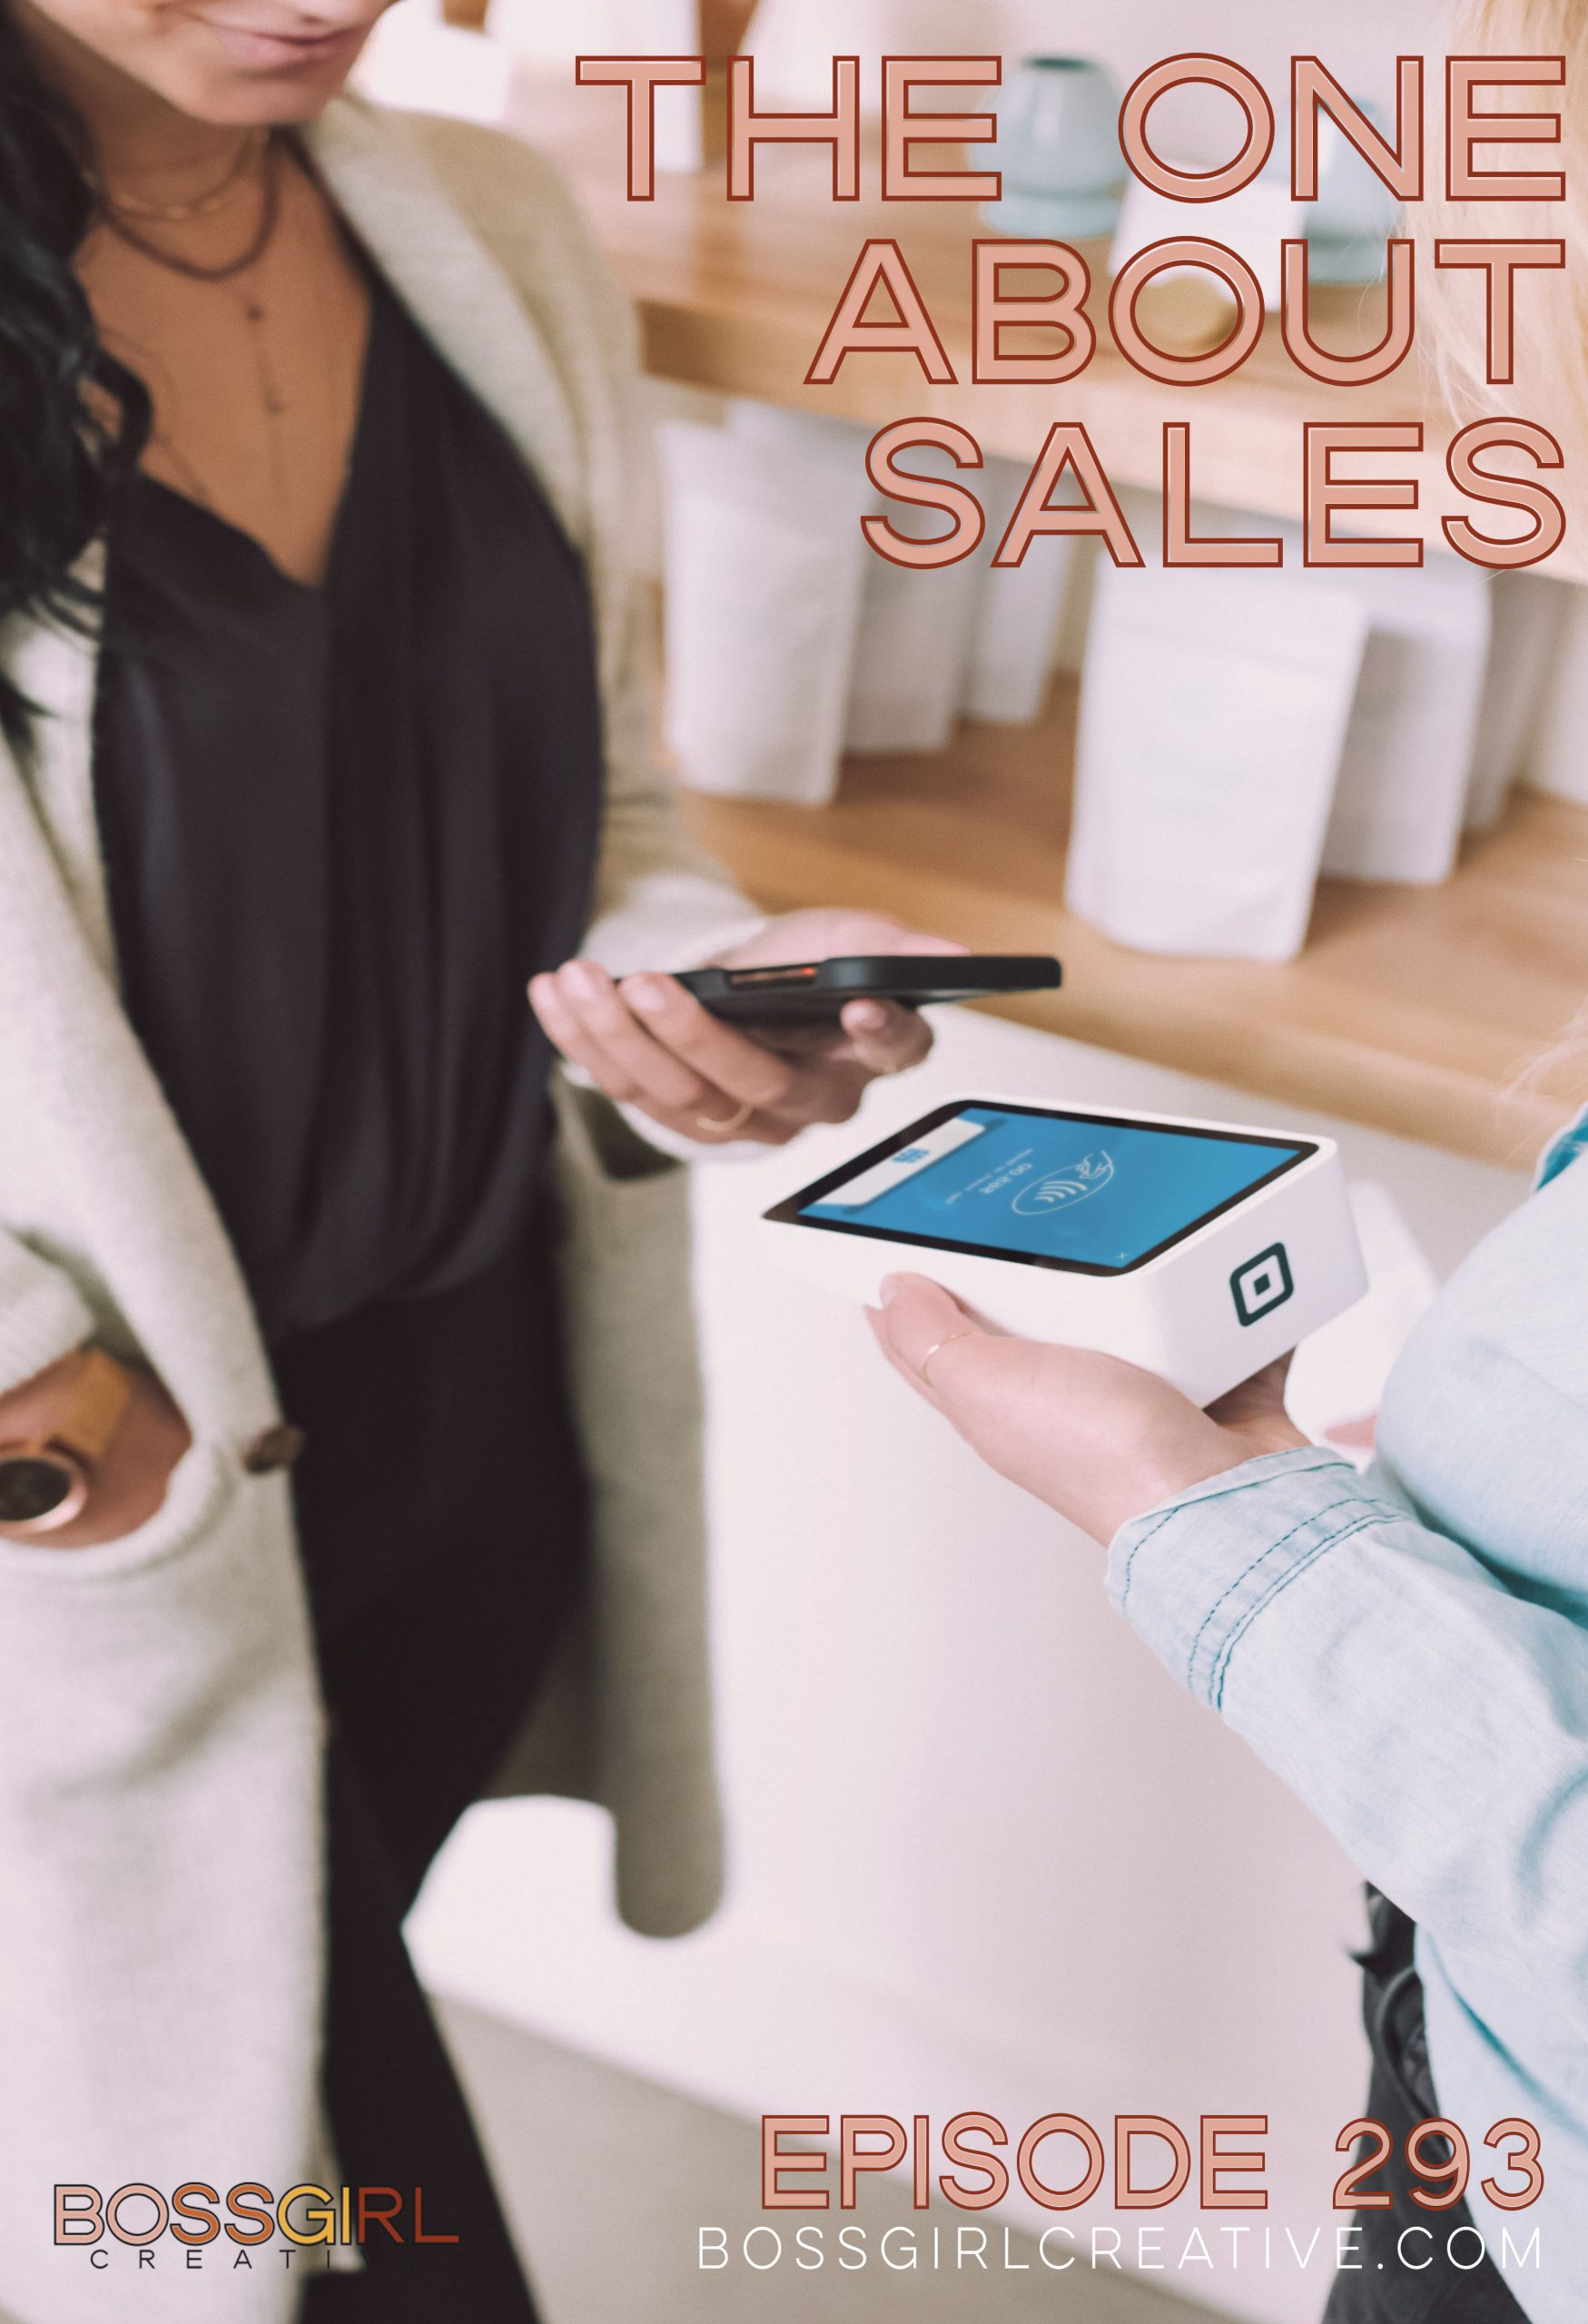 BGC Episode 293 - The One About Sales